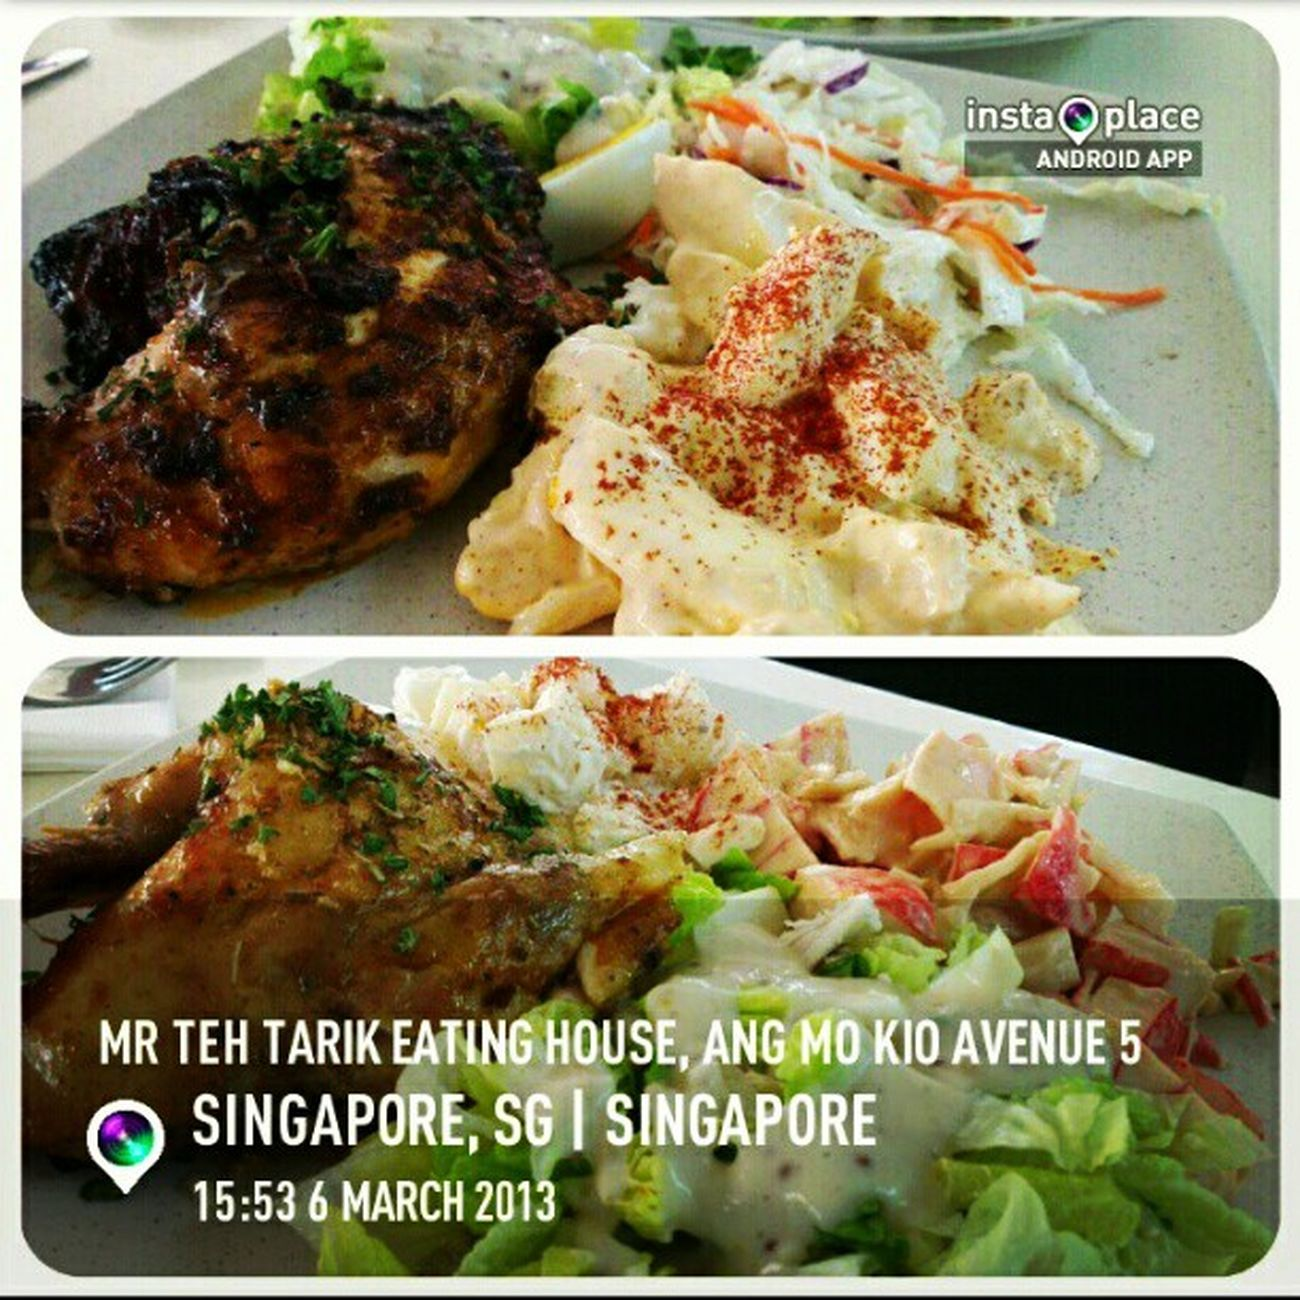 Charco's for lunch with @nurhidayahhh. Theflamingchicken